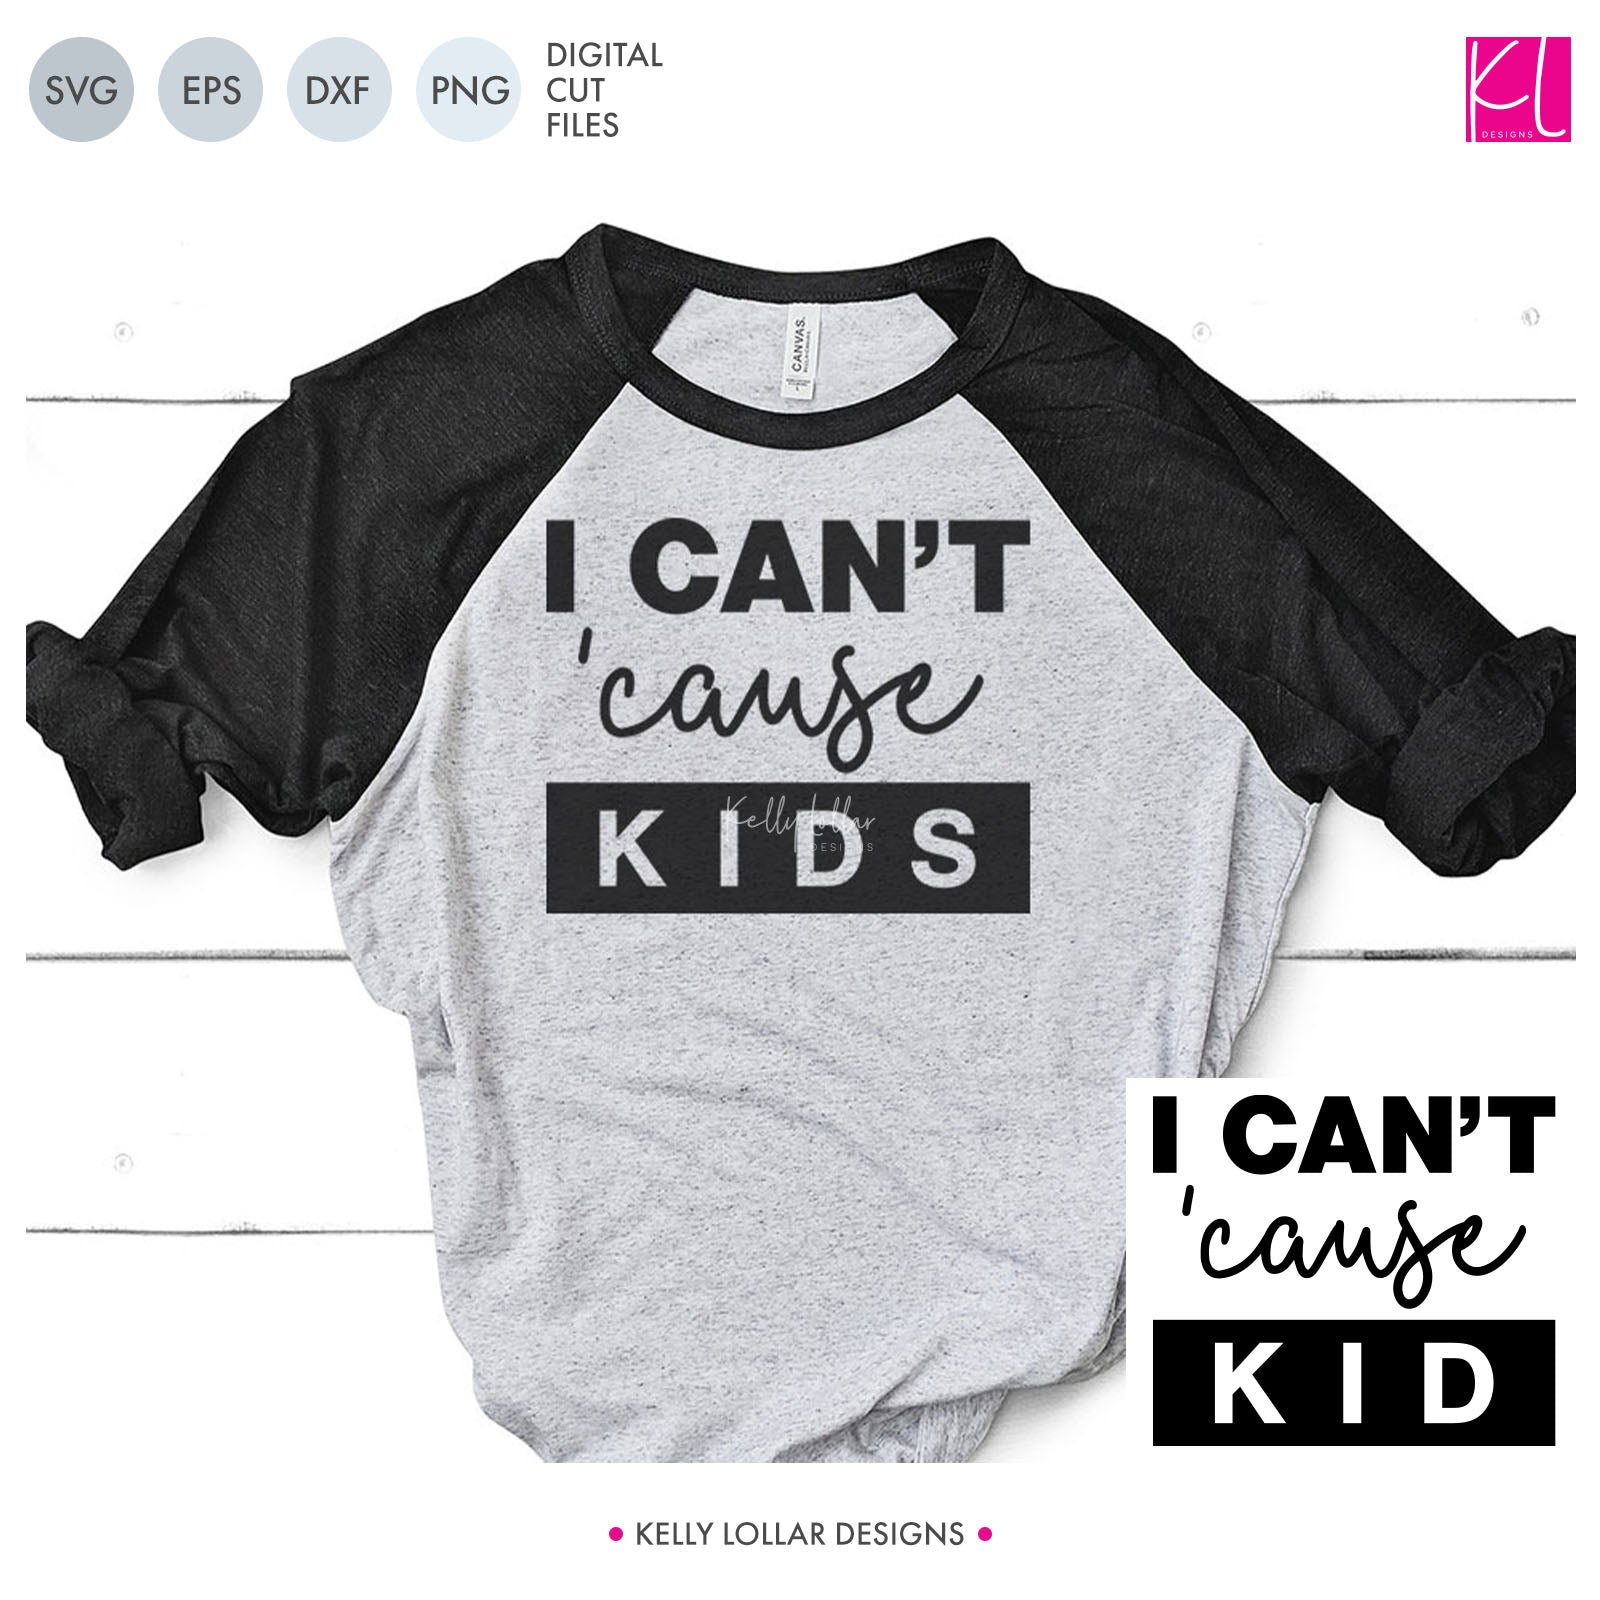 Free I Can't 'Cause Kids SVG Cut Files | Kelly Lollar Designs